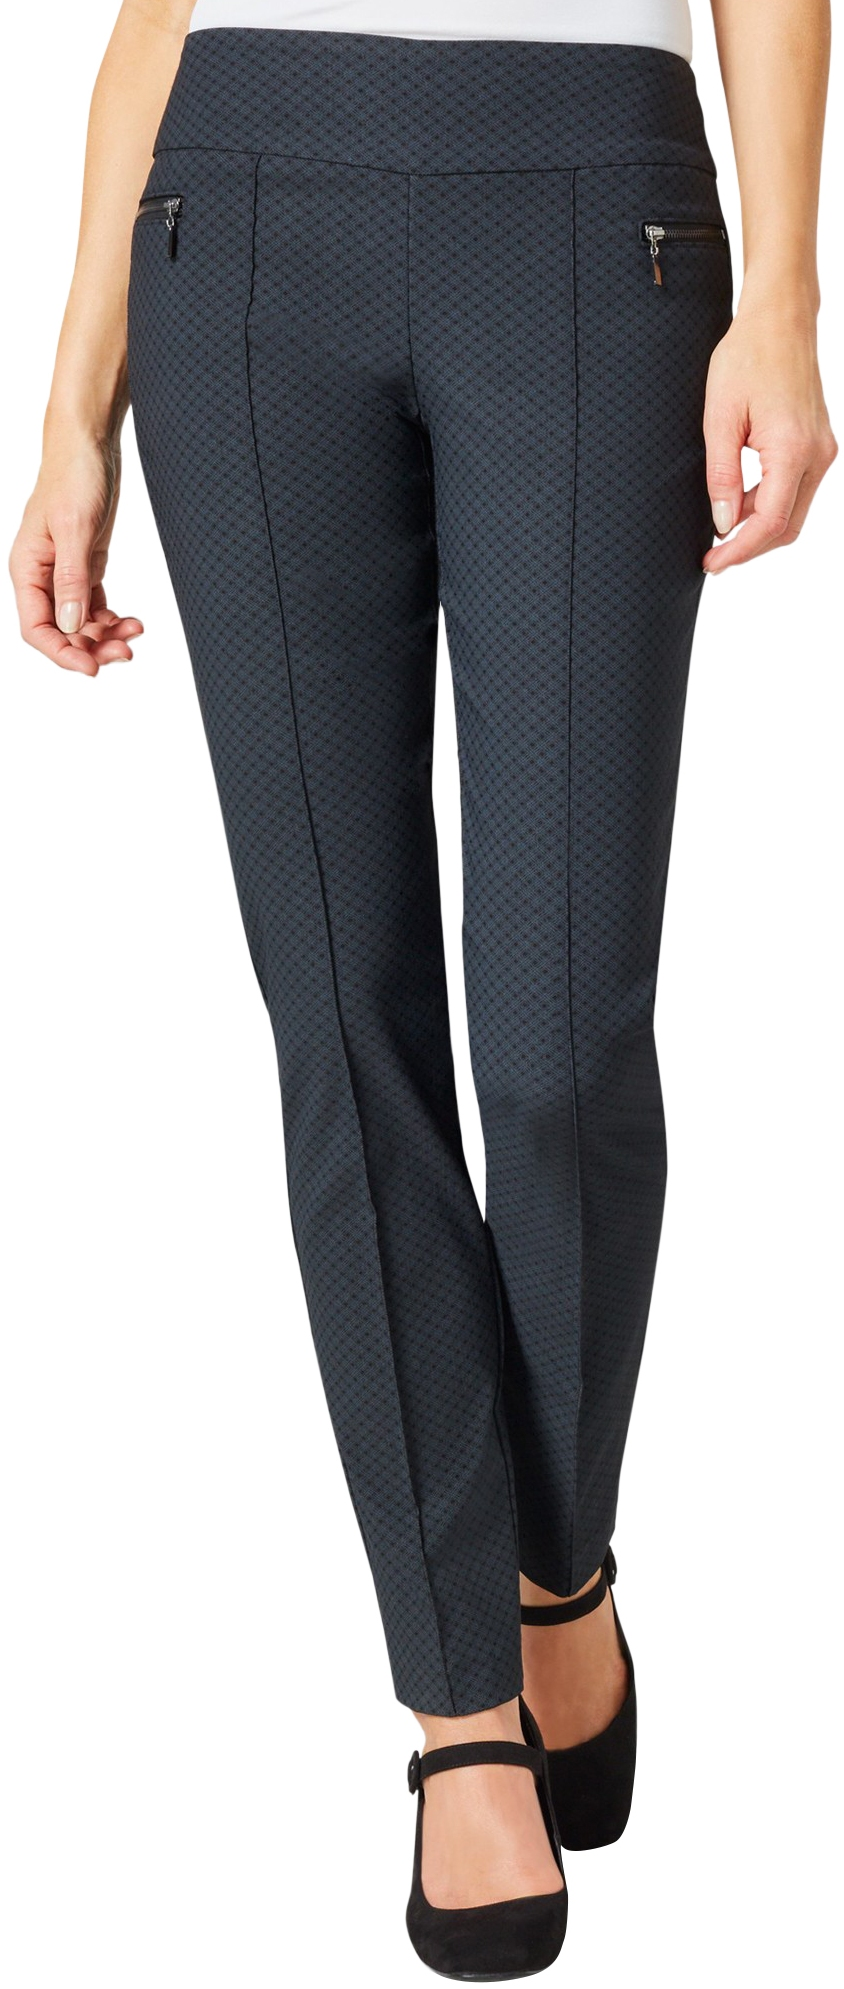 Lisette L. Skinny Legs Pants Style 100759 Diamond Pattern Mock Zip